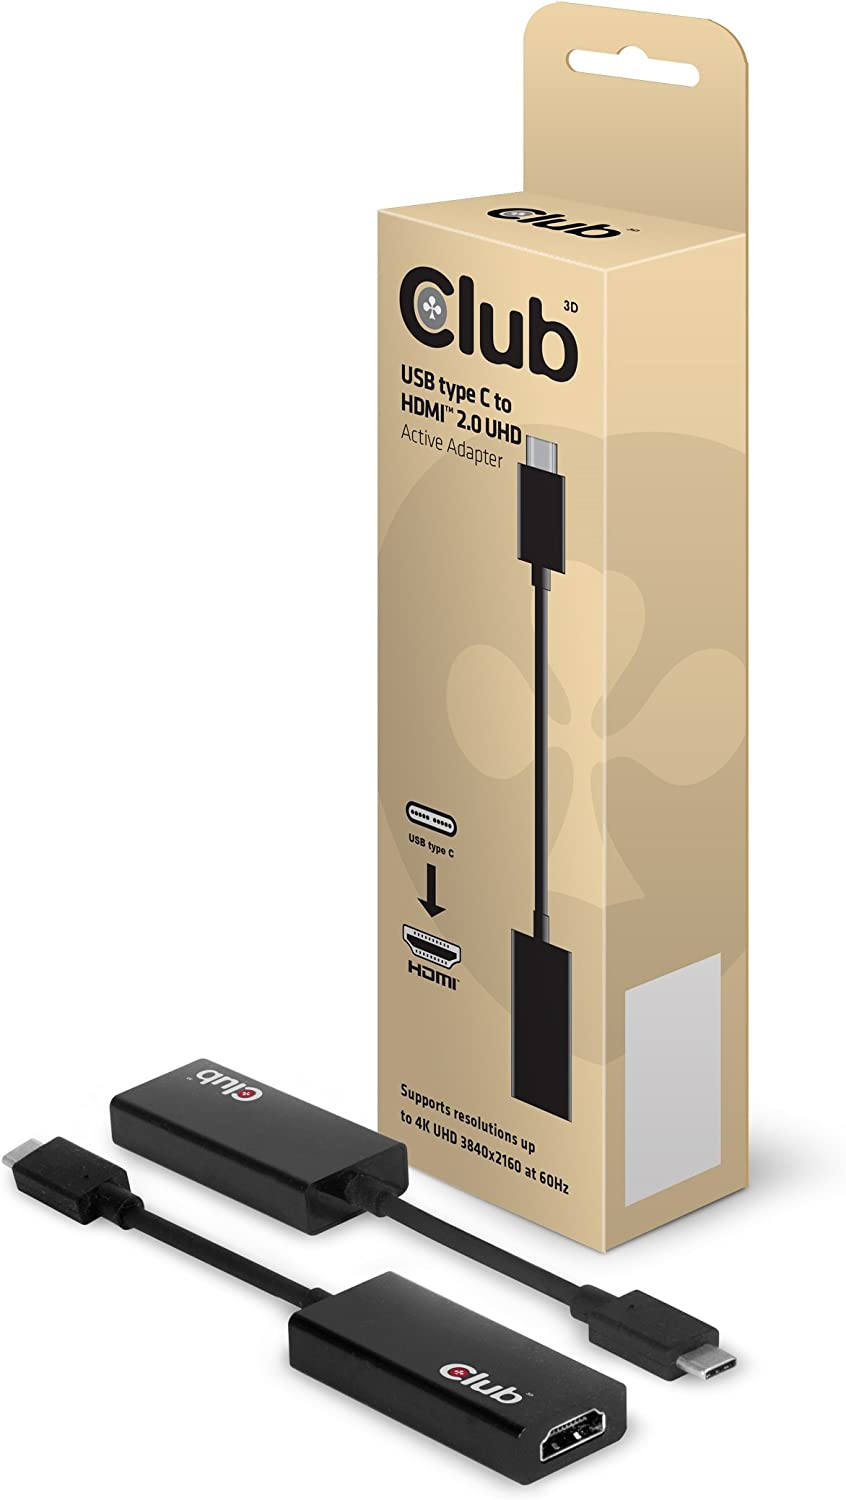 "Club 3D ,CAC-1504,USB-C to HDMI 2.0 Adapter for MacBook Retina 12"" 2015 / 2016, XPS 2016, Chromebook Pixel 2015, Thunderbolt 3 & More (Supports 4K / UHD Displays up to 3840x2160@60Hz)"